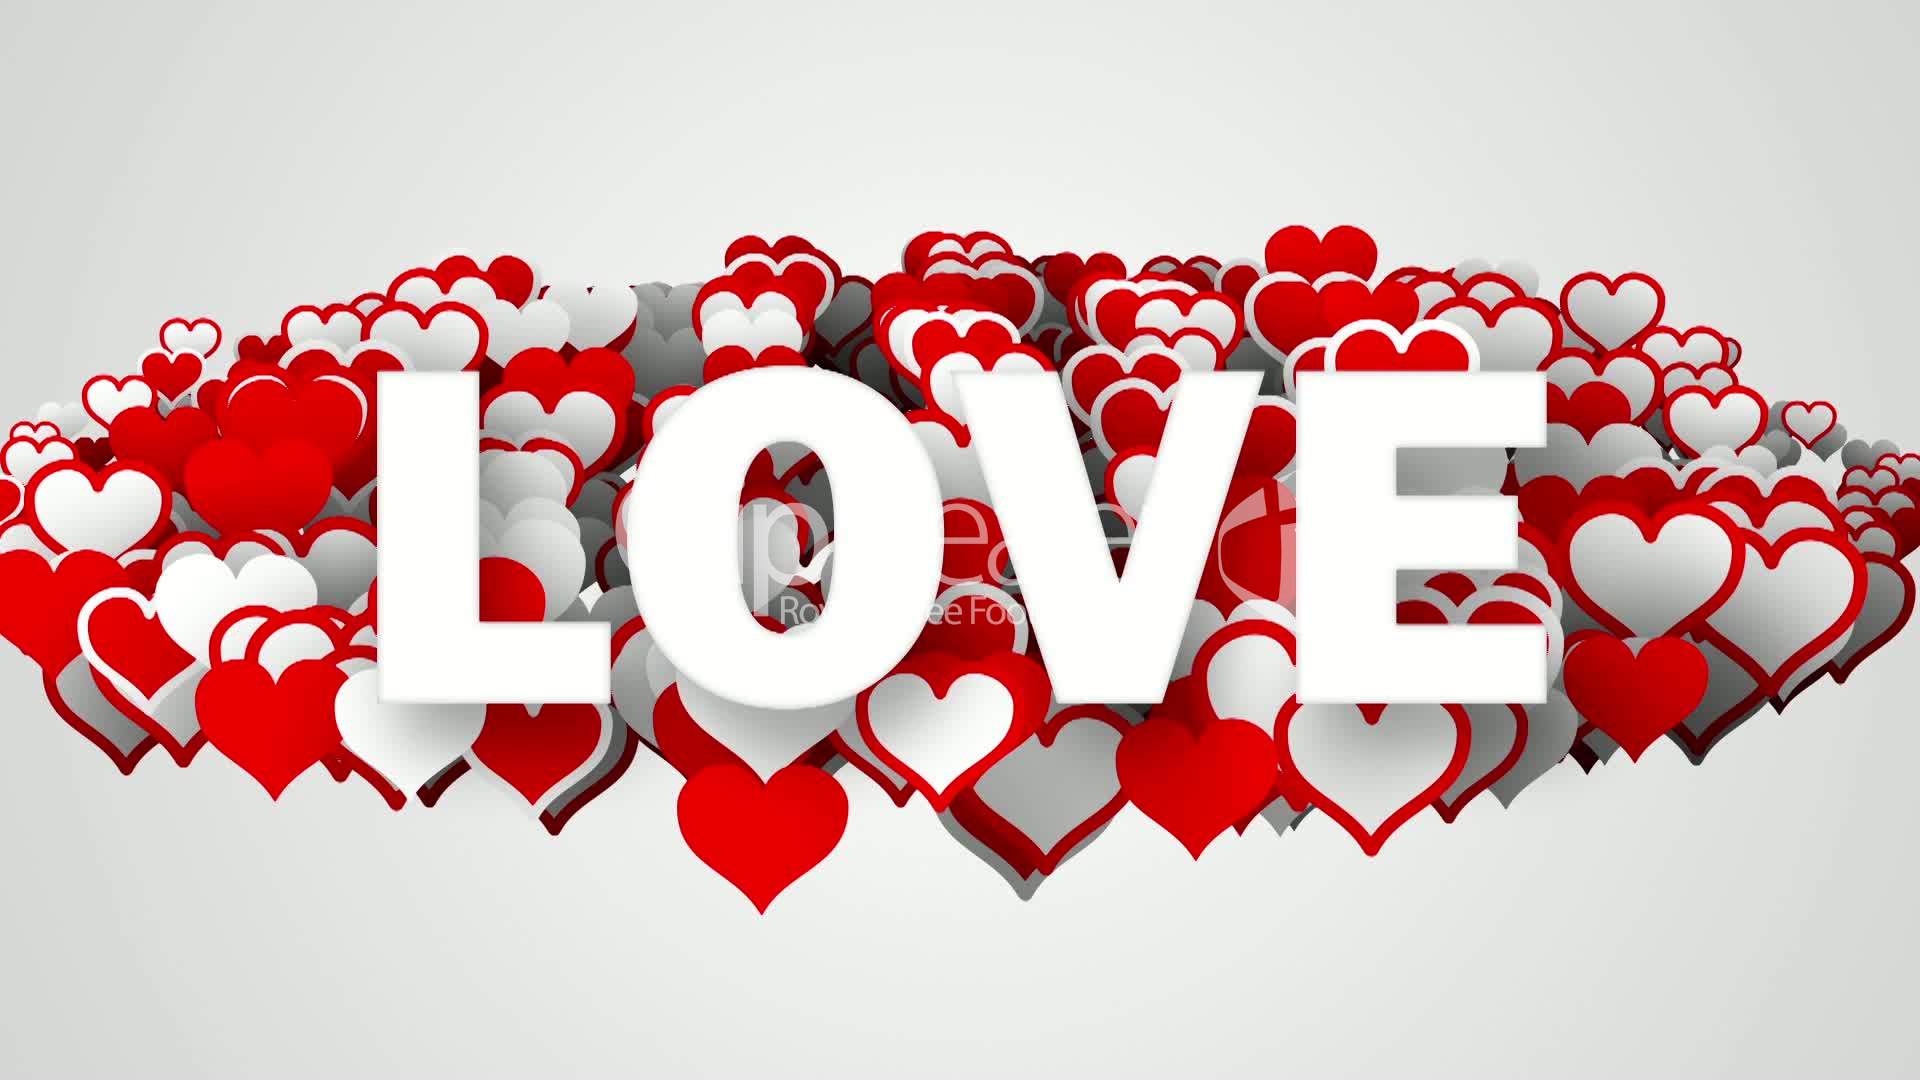 Love Text On Heart Shapes Loop Royalty Free Video And Stock Footage